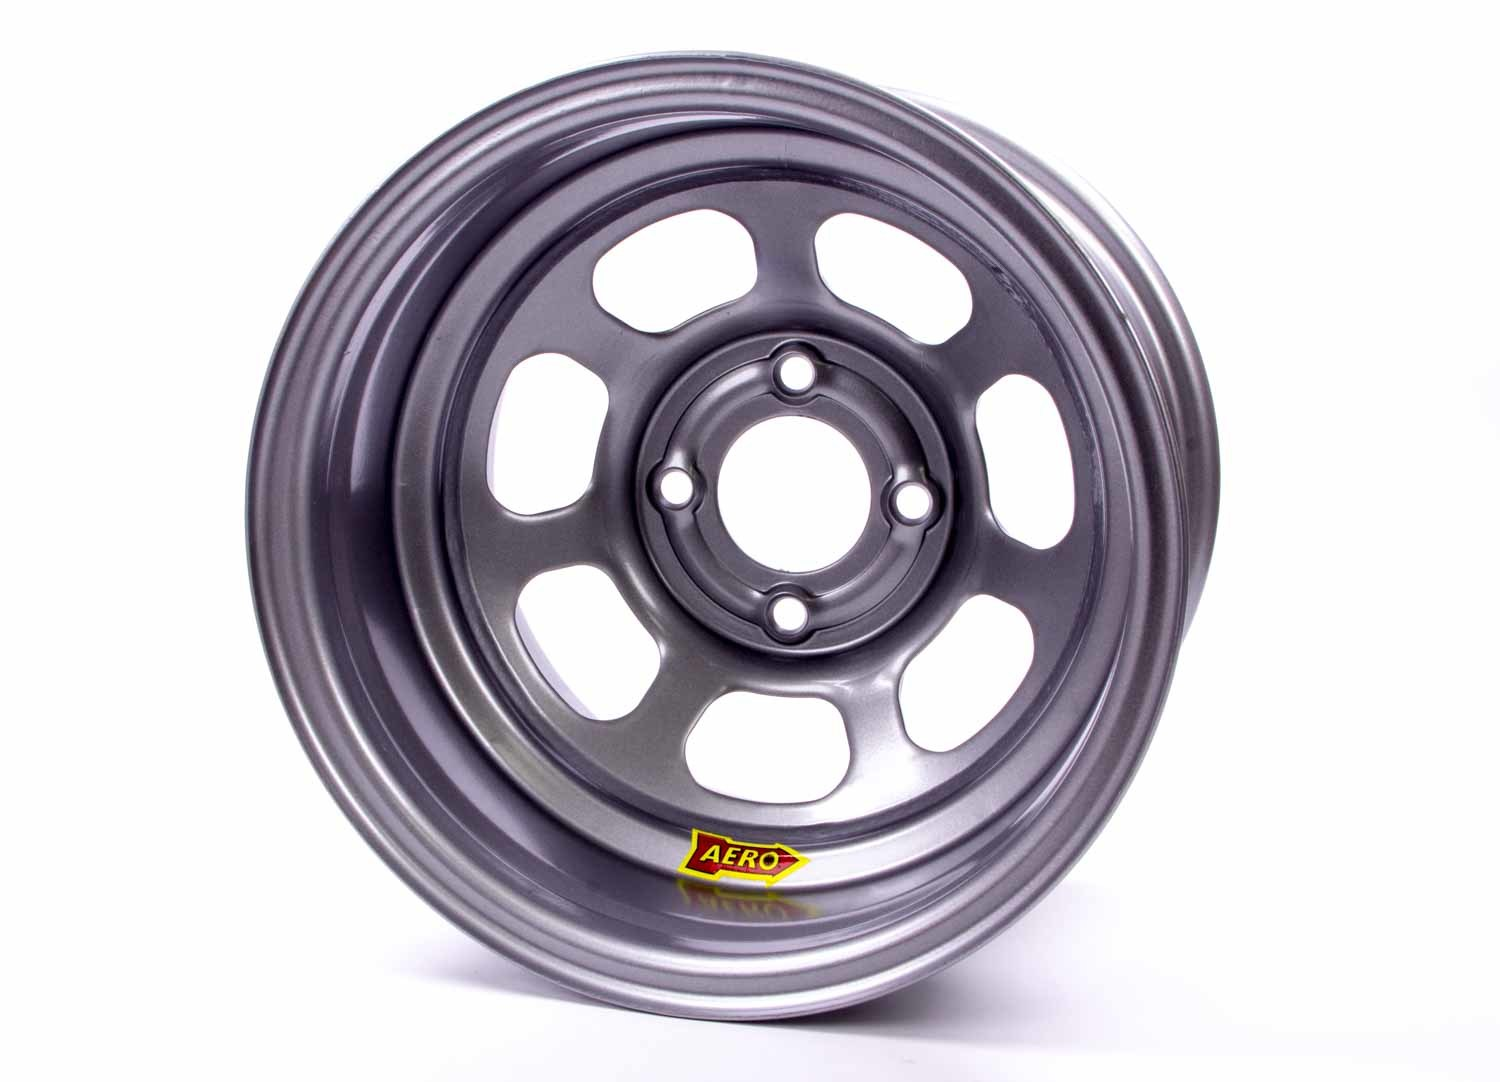 Aero Race 13x8 3in 4.25 Silver  Wheel